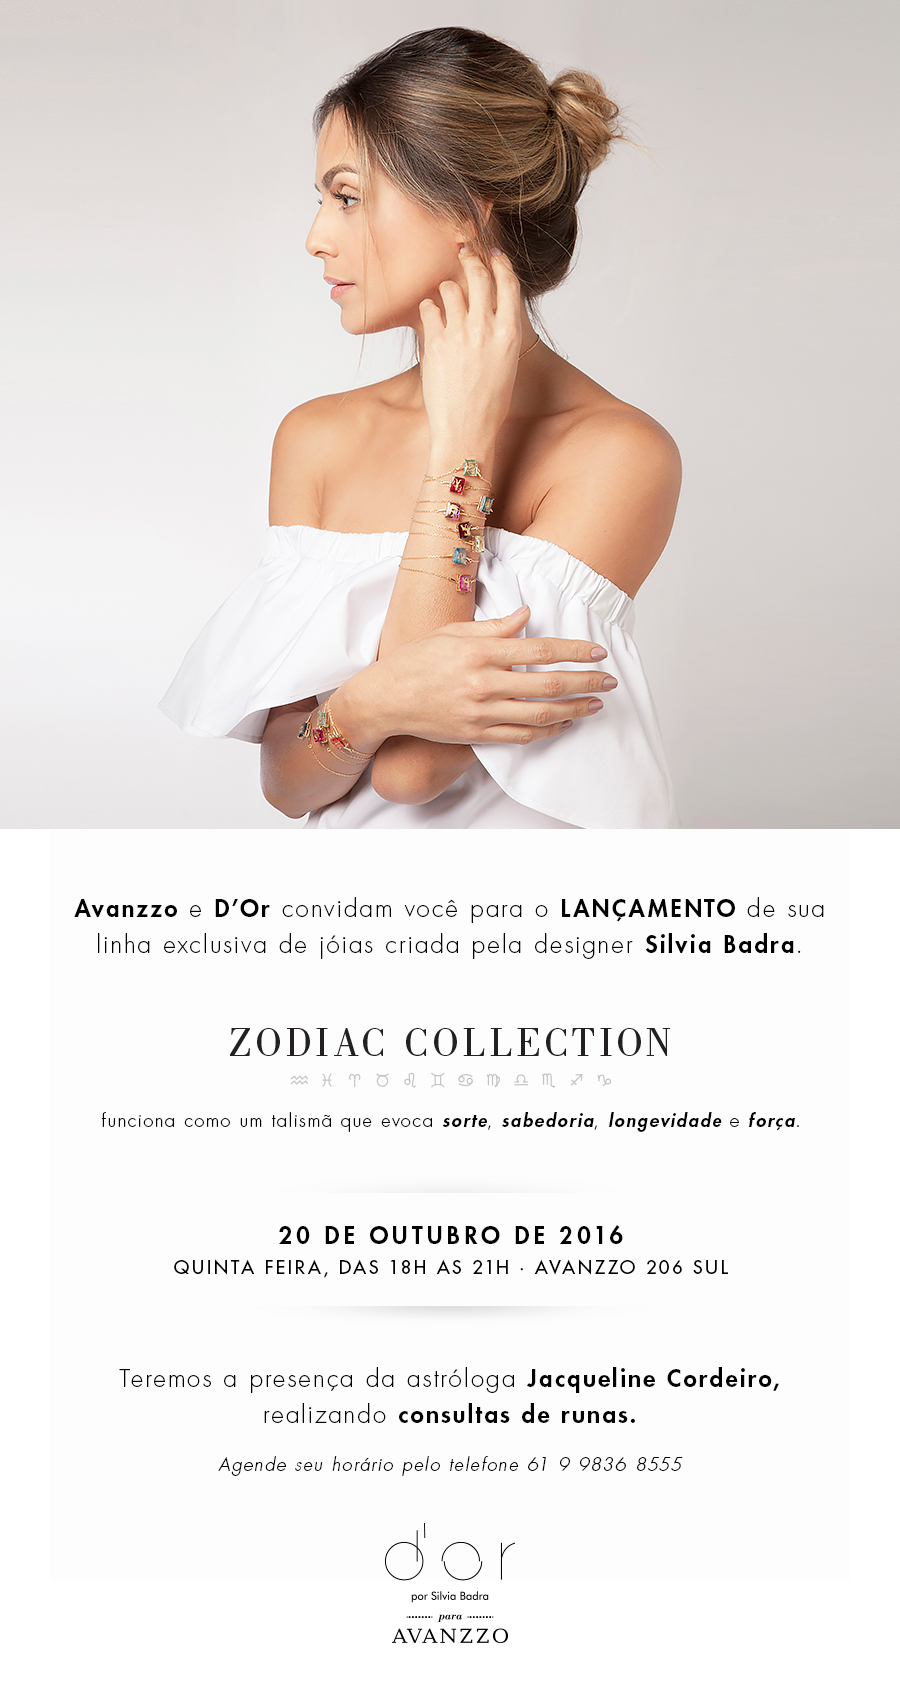 Avanzzo Zoadiac Collection